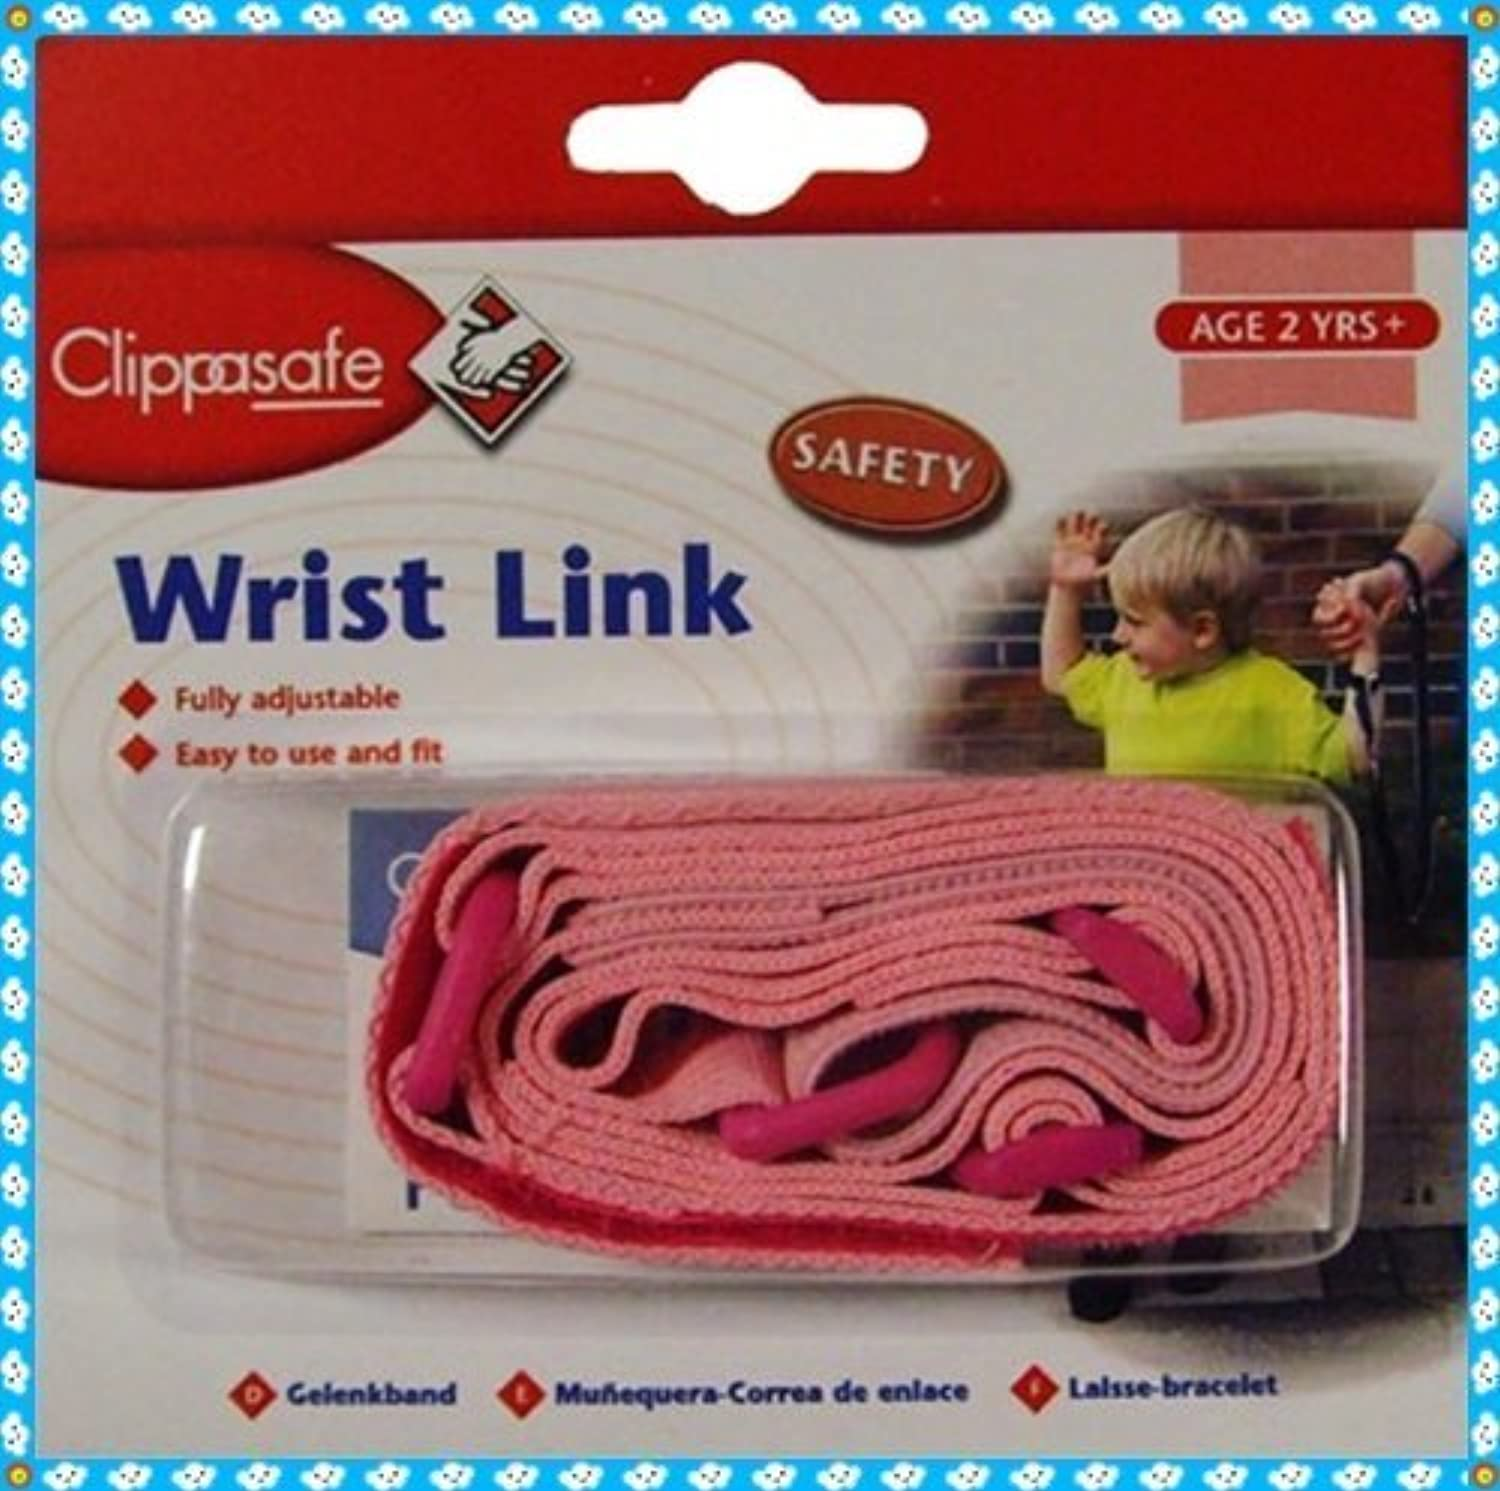 CLIPPASAFE WRIST LINK IN PINK COLOUR by Clippasafe